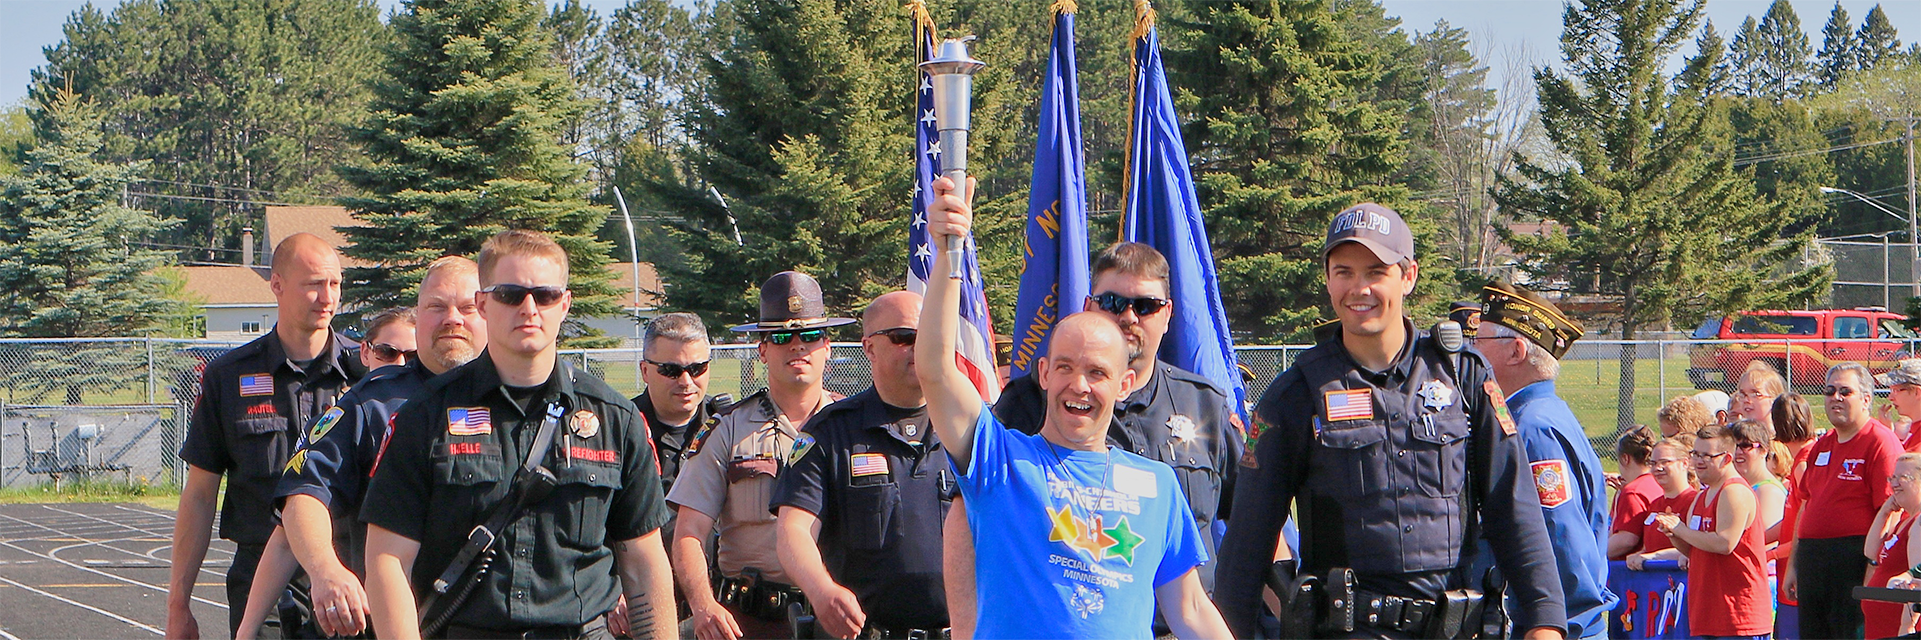 Special Olympics Minnesota athlete holding torch while marching with law enforcement officers with crowd watching from side